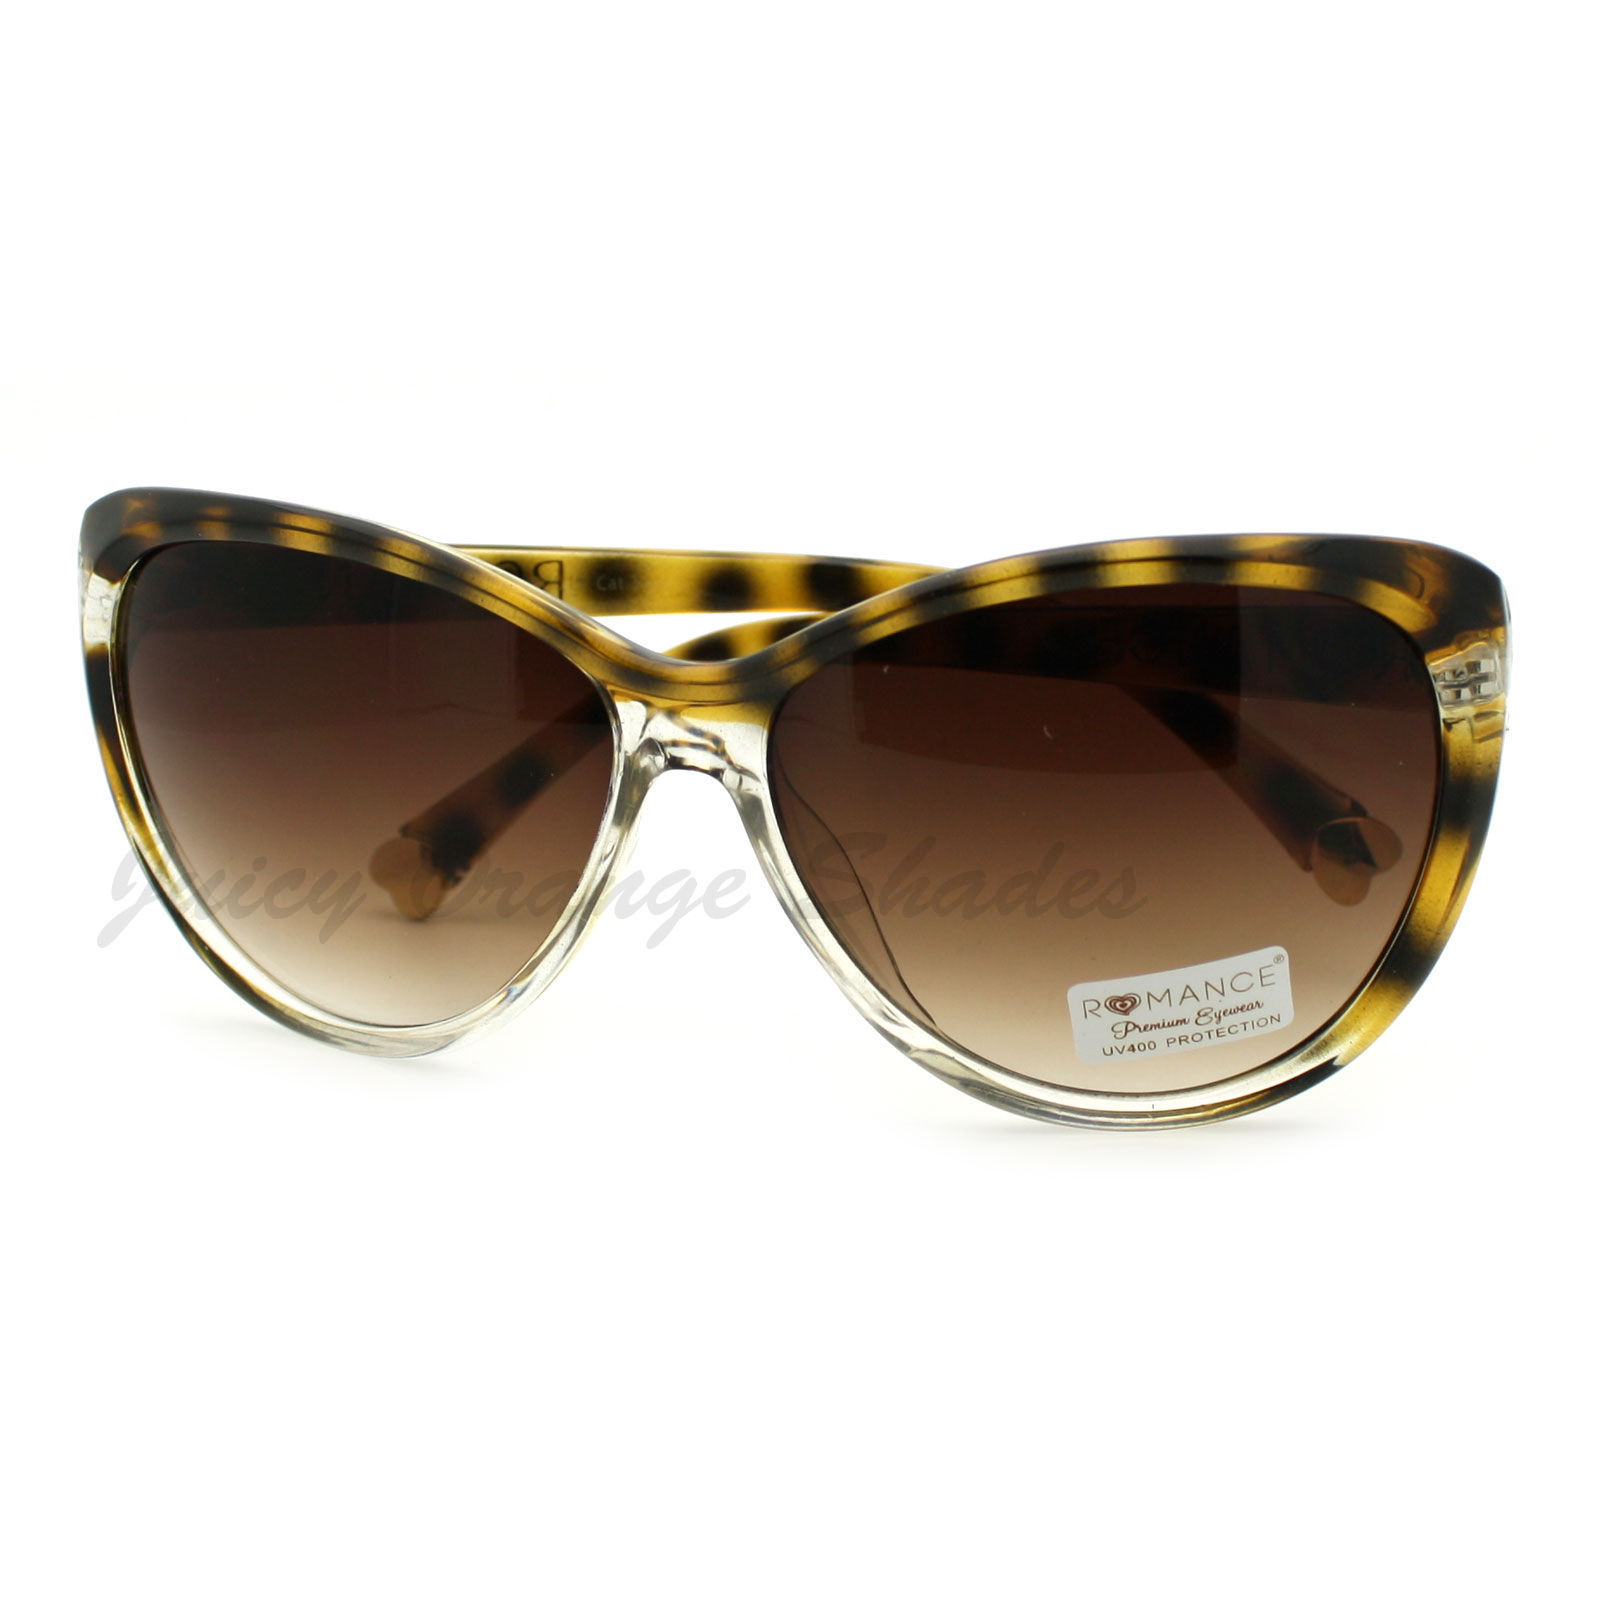 Oversized Round Cateye Sunglasses Womens Fashion Heart Tip